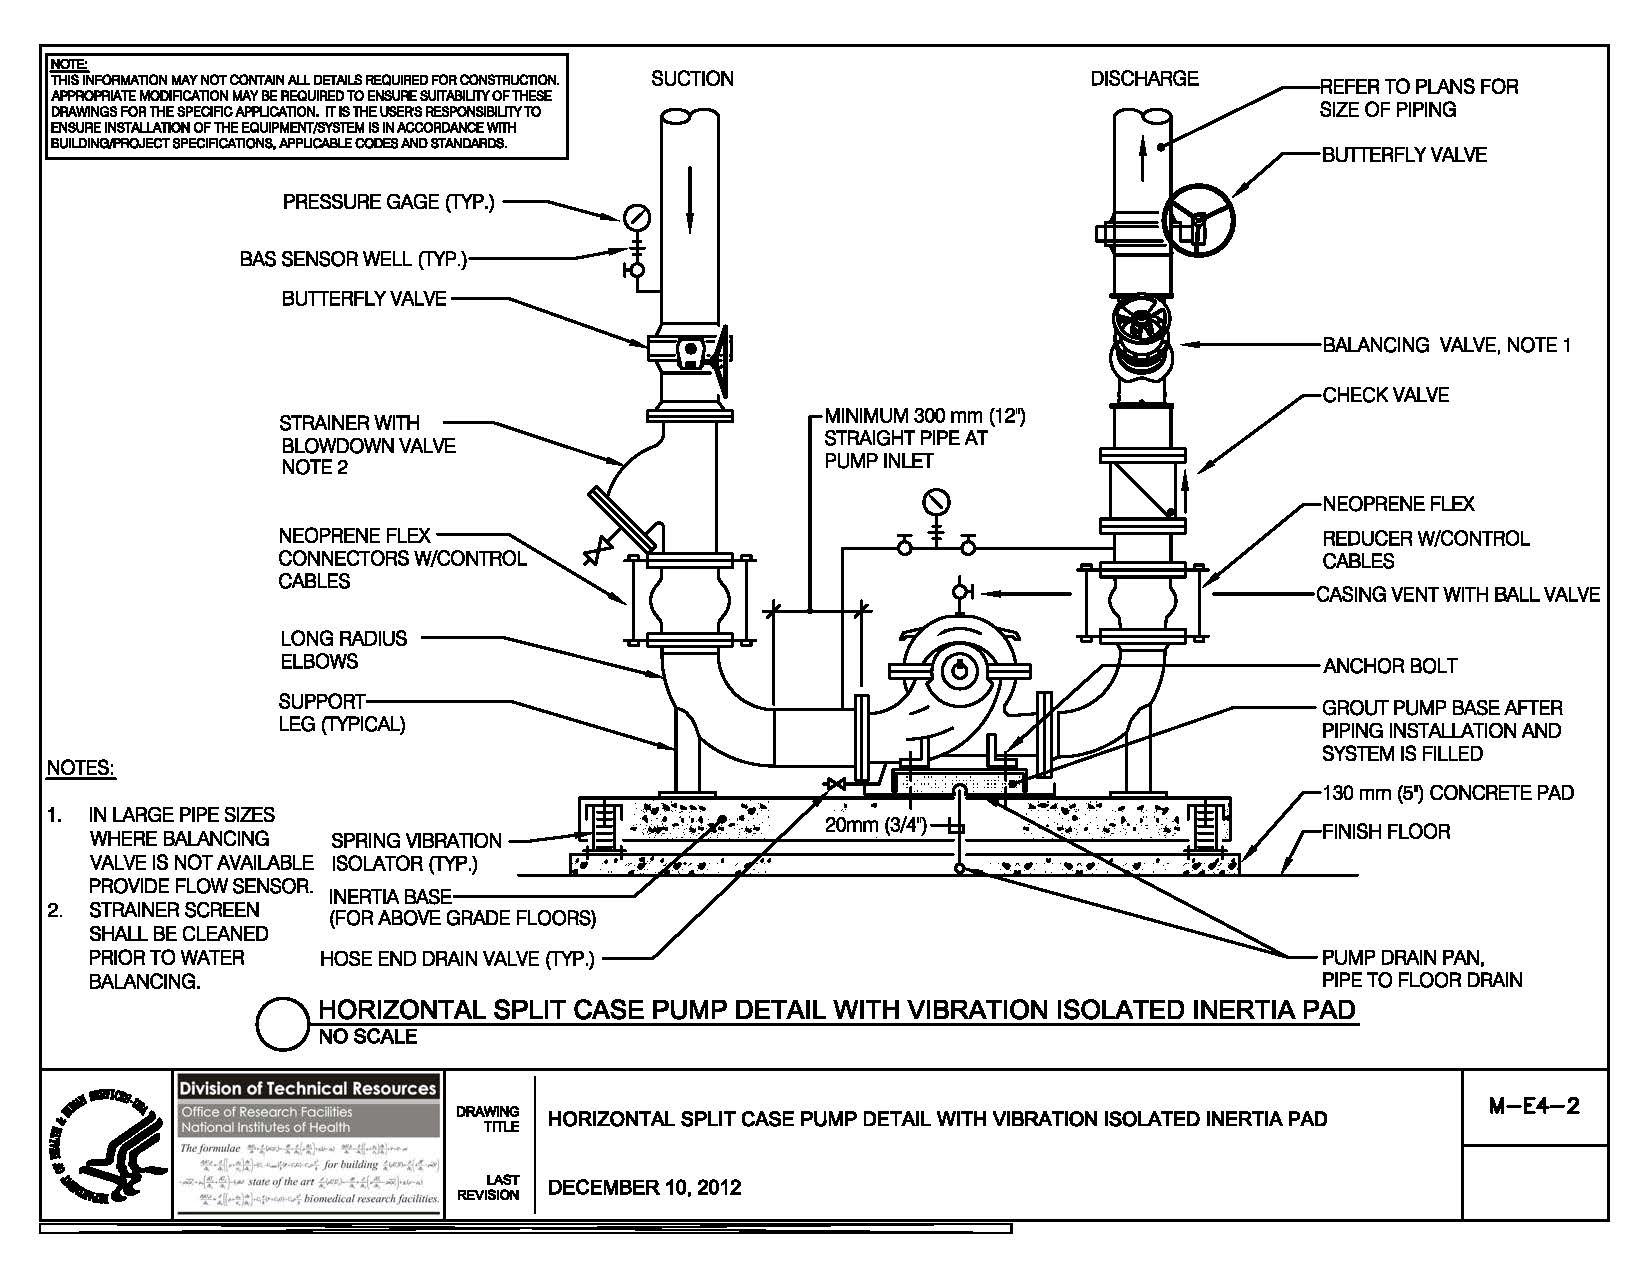 NIH Standard CAD Details on fire pump block diagram, fire pump control panel, fire pump layout diagram, oil pump schematic diagram, fire pump discharge pressure, fire pump sprinkler system diagram, vacuum pump schematic diagram, fire pump panel diagram, fire pump cover, fire pump motor diagram, hale fire pump diagram, fire pump assembly diagram, water pump schematic diagram, fire pump wiring diagram, sump pump schematic diagram, typical fire pump diagram, fire pump components diagram, fire pump exploded view, fire pump sensing line diagram, fire engine pump plumbing diagram,